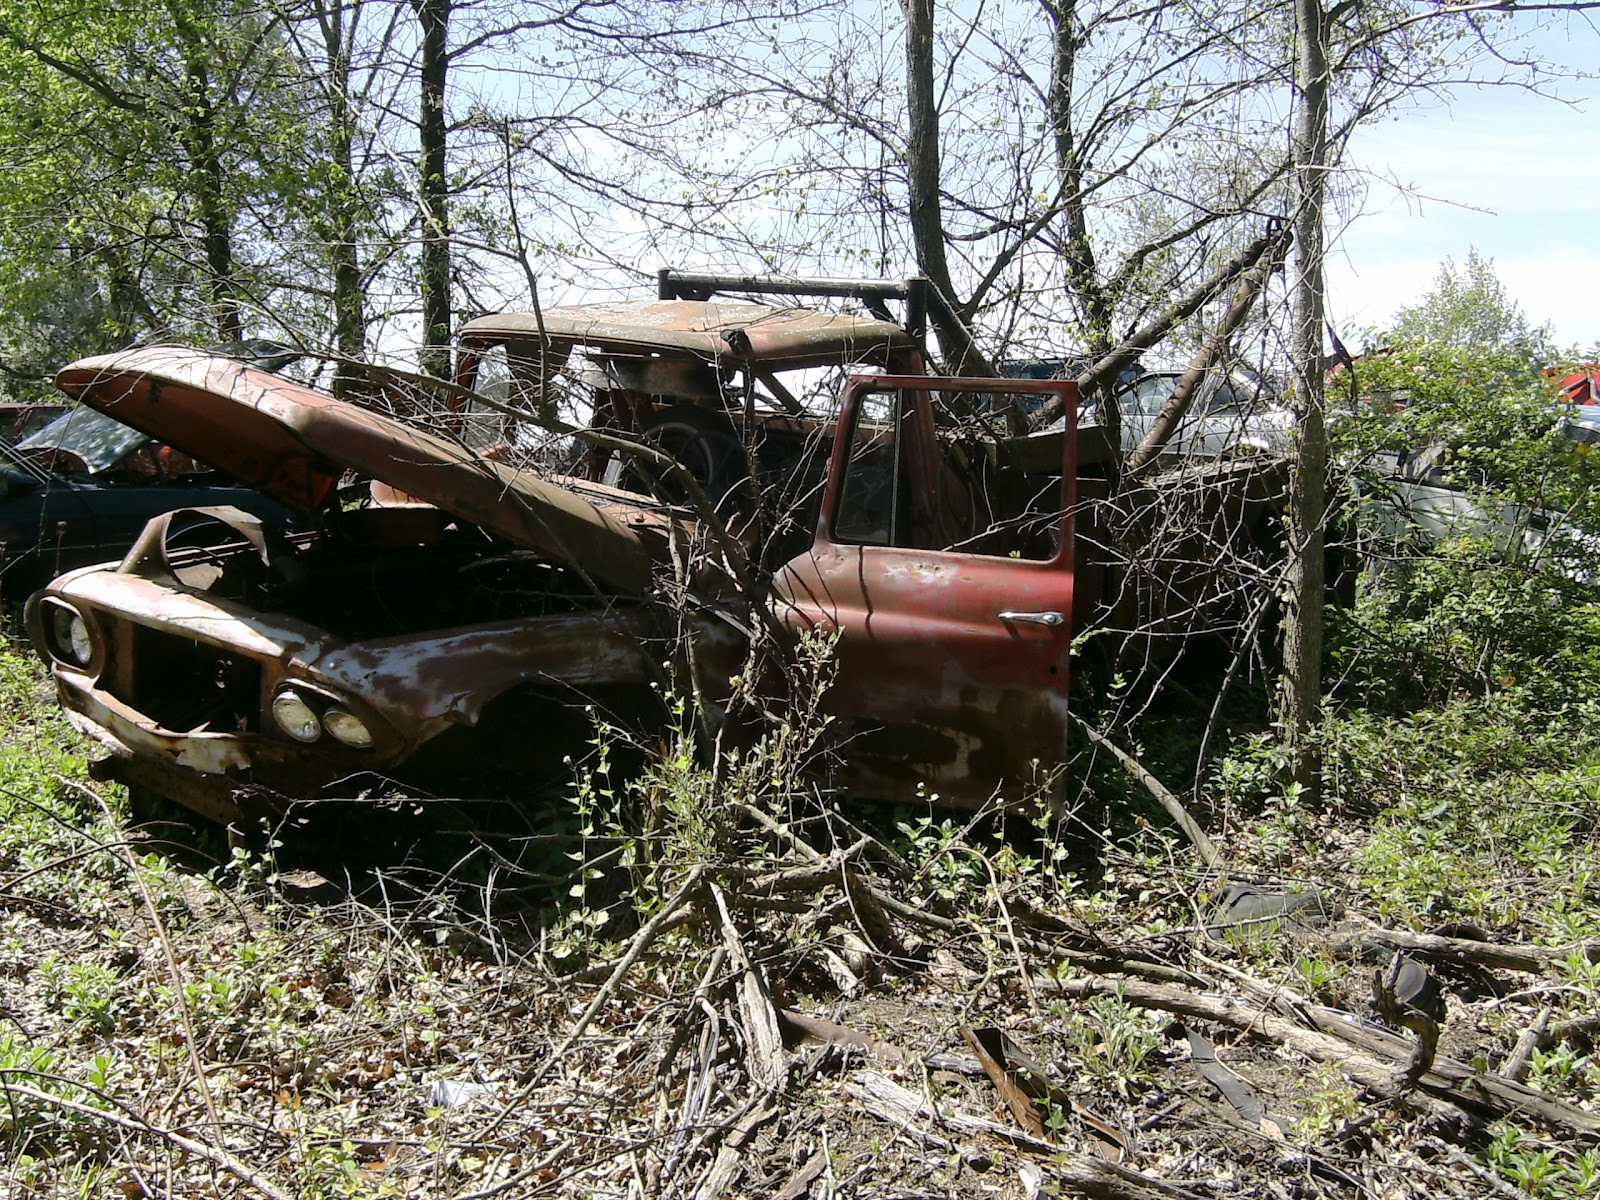 Another Look At A Junkyard Stroll With This olelongrooffan ...